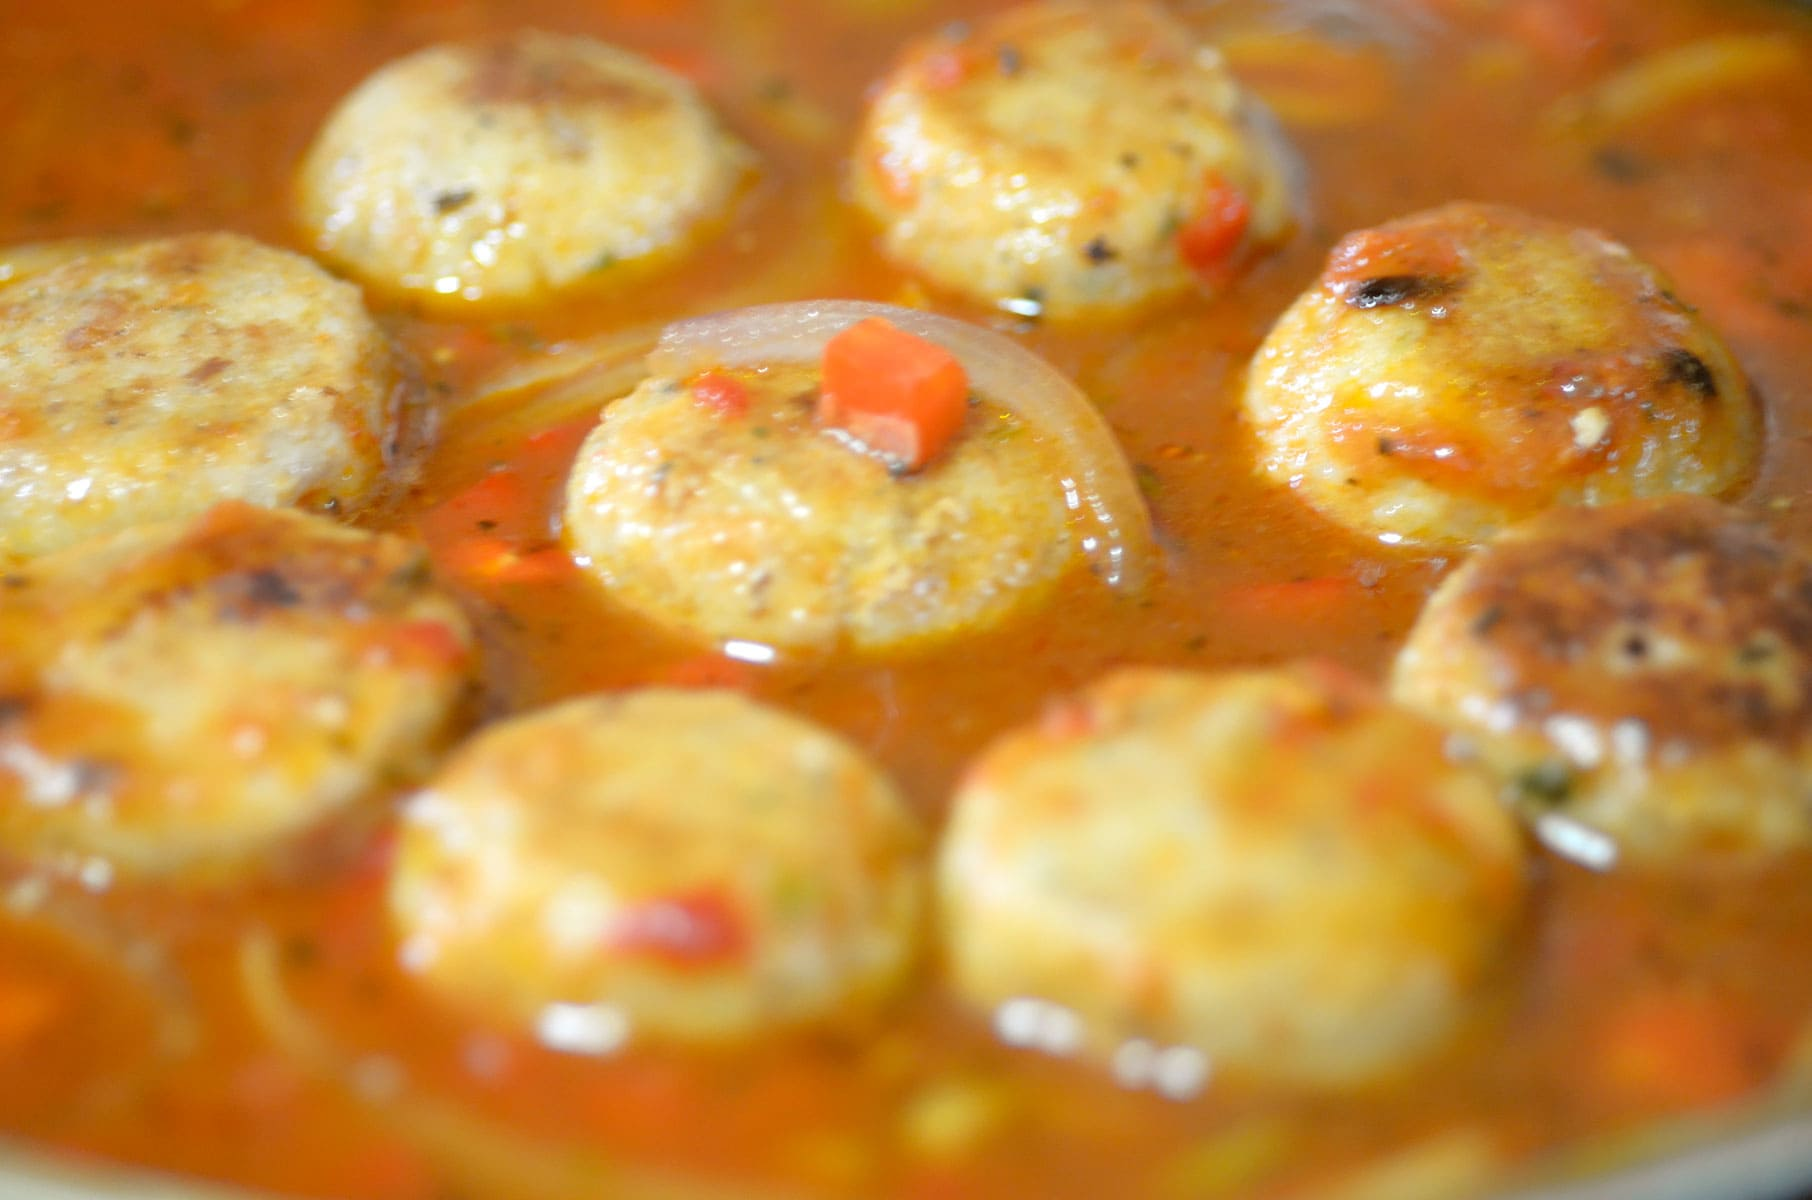 Fishballs cooking in tomato sauce